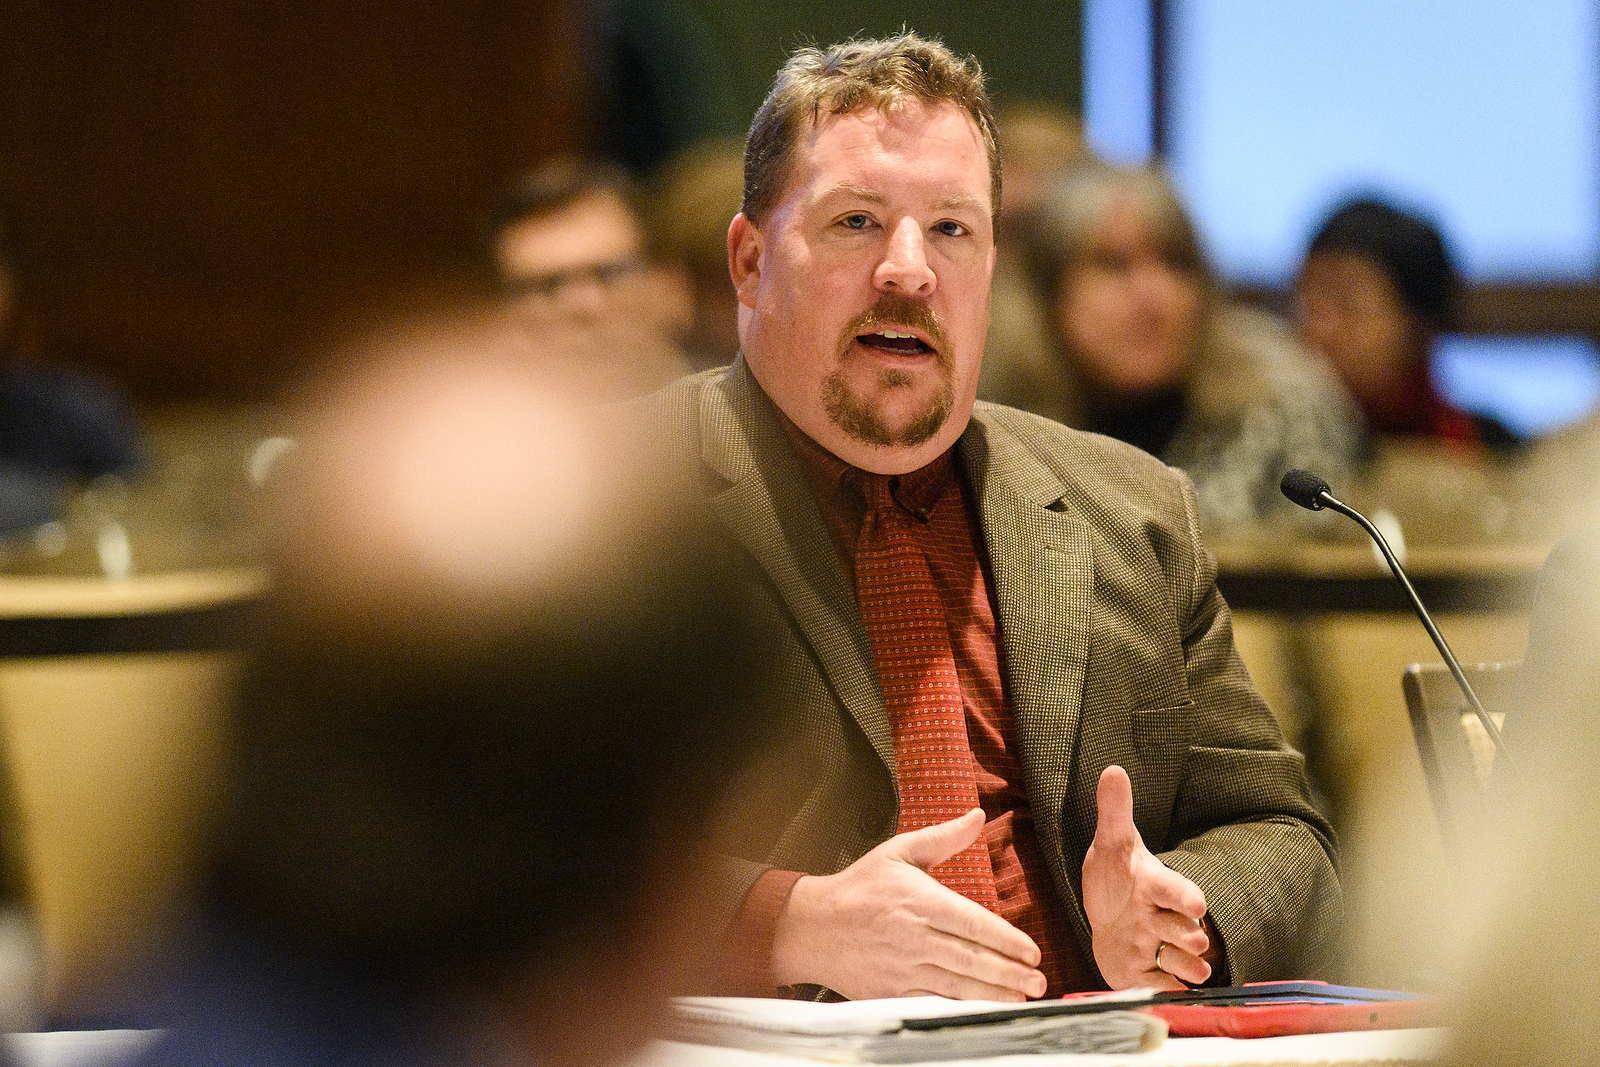 Christopher Poquet, UW-Green Bay's Assistant Vice Chancellor for Policy and Compliance and chair of the Sexual Violence and Harassment Priorities Working Group, presents a report from the working group at the UW System Board of Regents meeting hosted at Union South at the University of Wisconsin-Madison on Feb. 7, 2019. (Photo by Bryce Richter /UW-Madison)